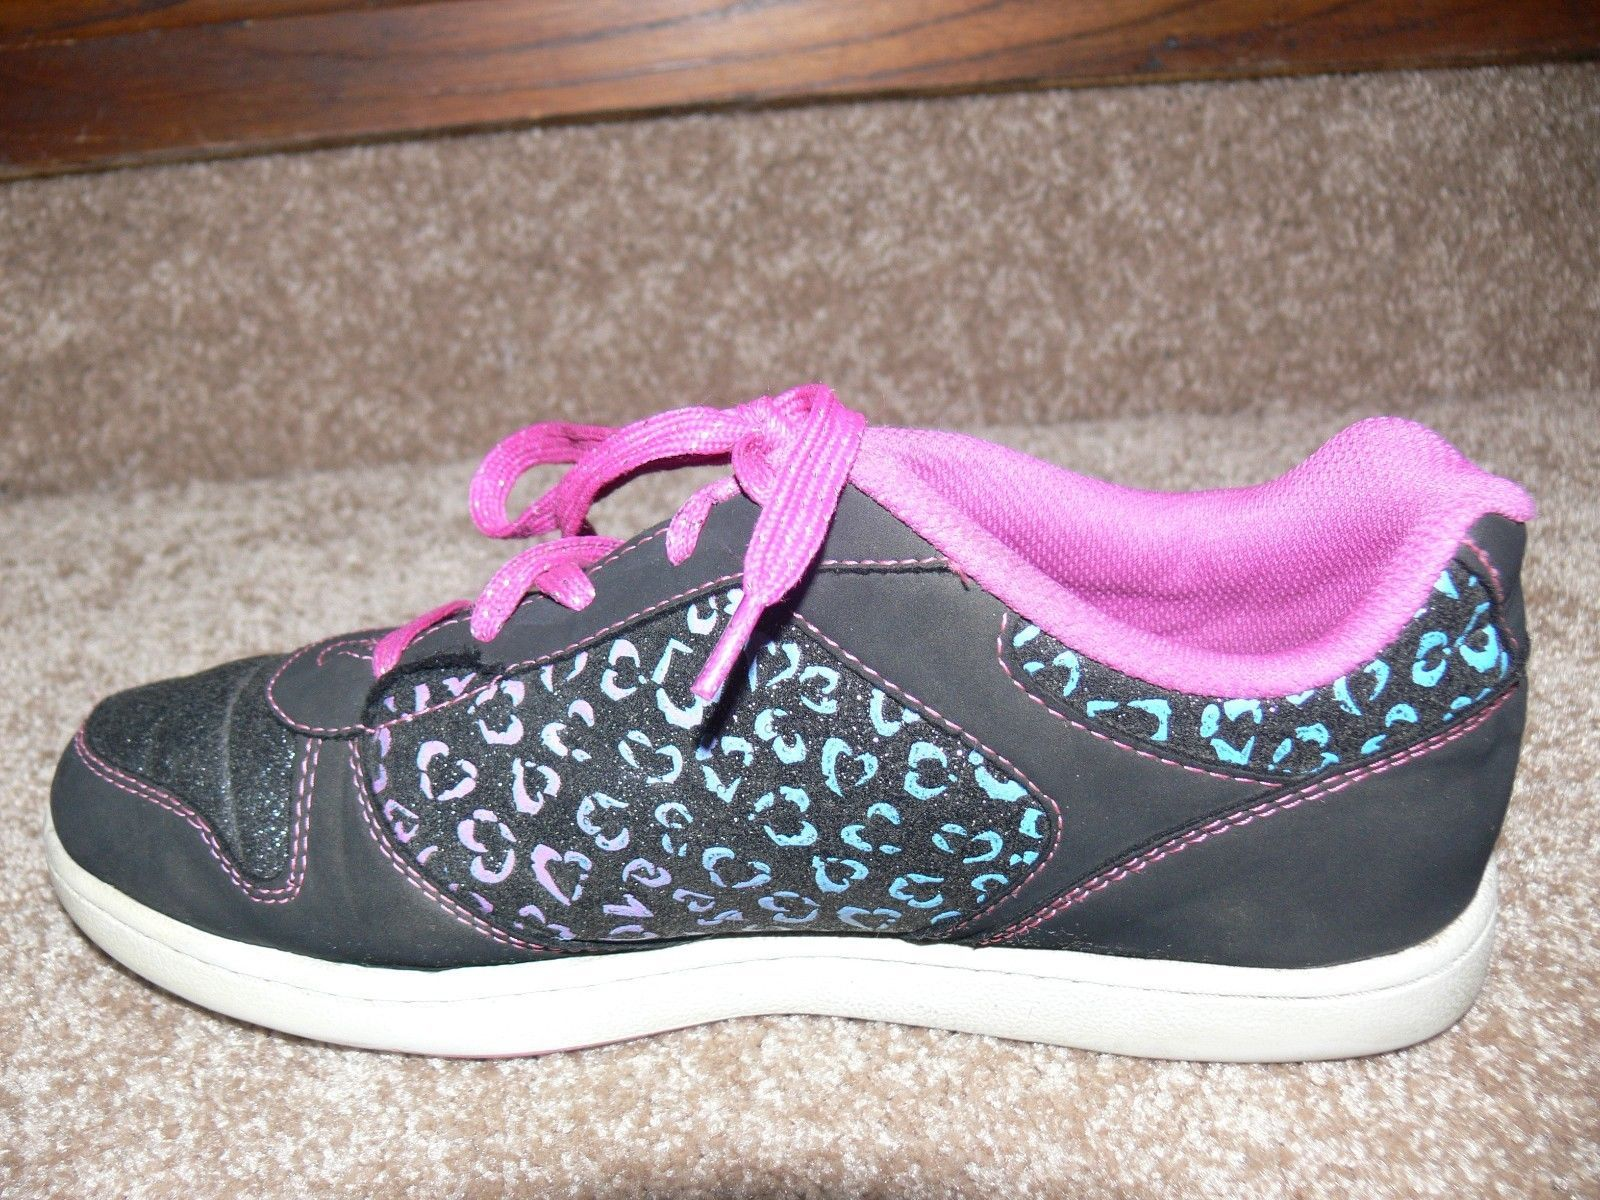 DISNEY LIV AND MADDIE Shoes Youth Sneakers Glitter Hearts Girls Size 5 cz image 5